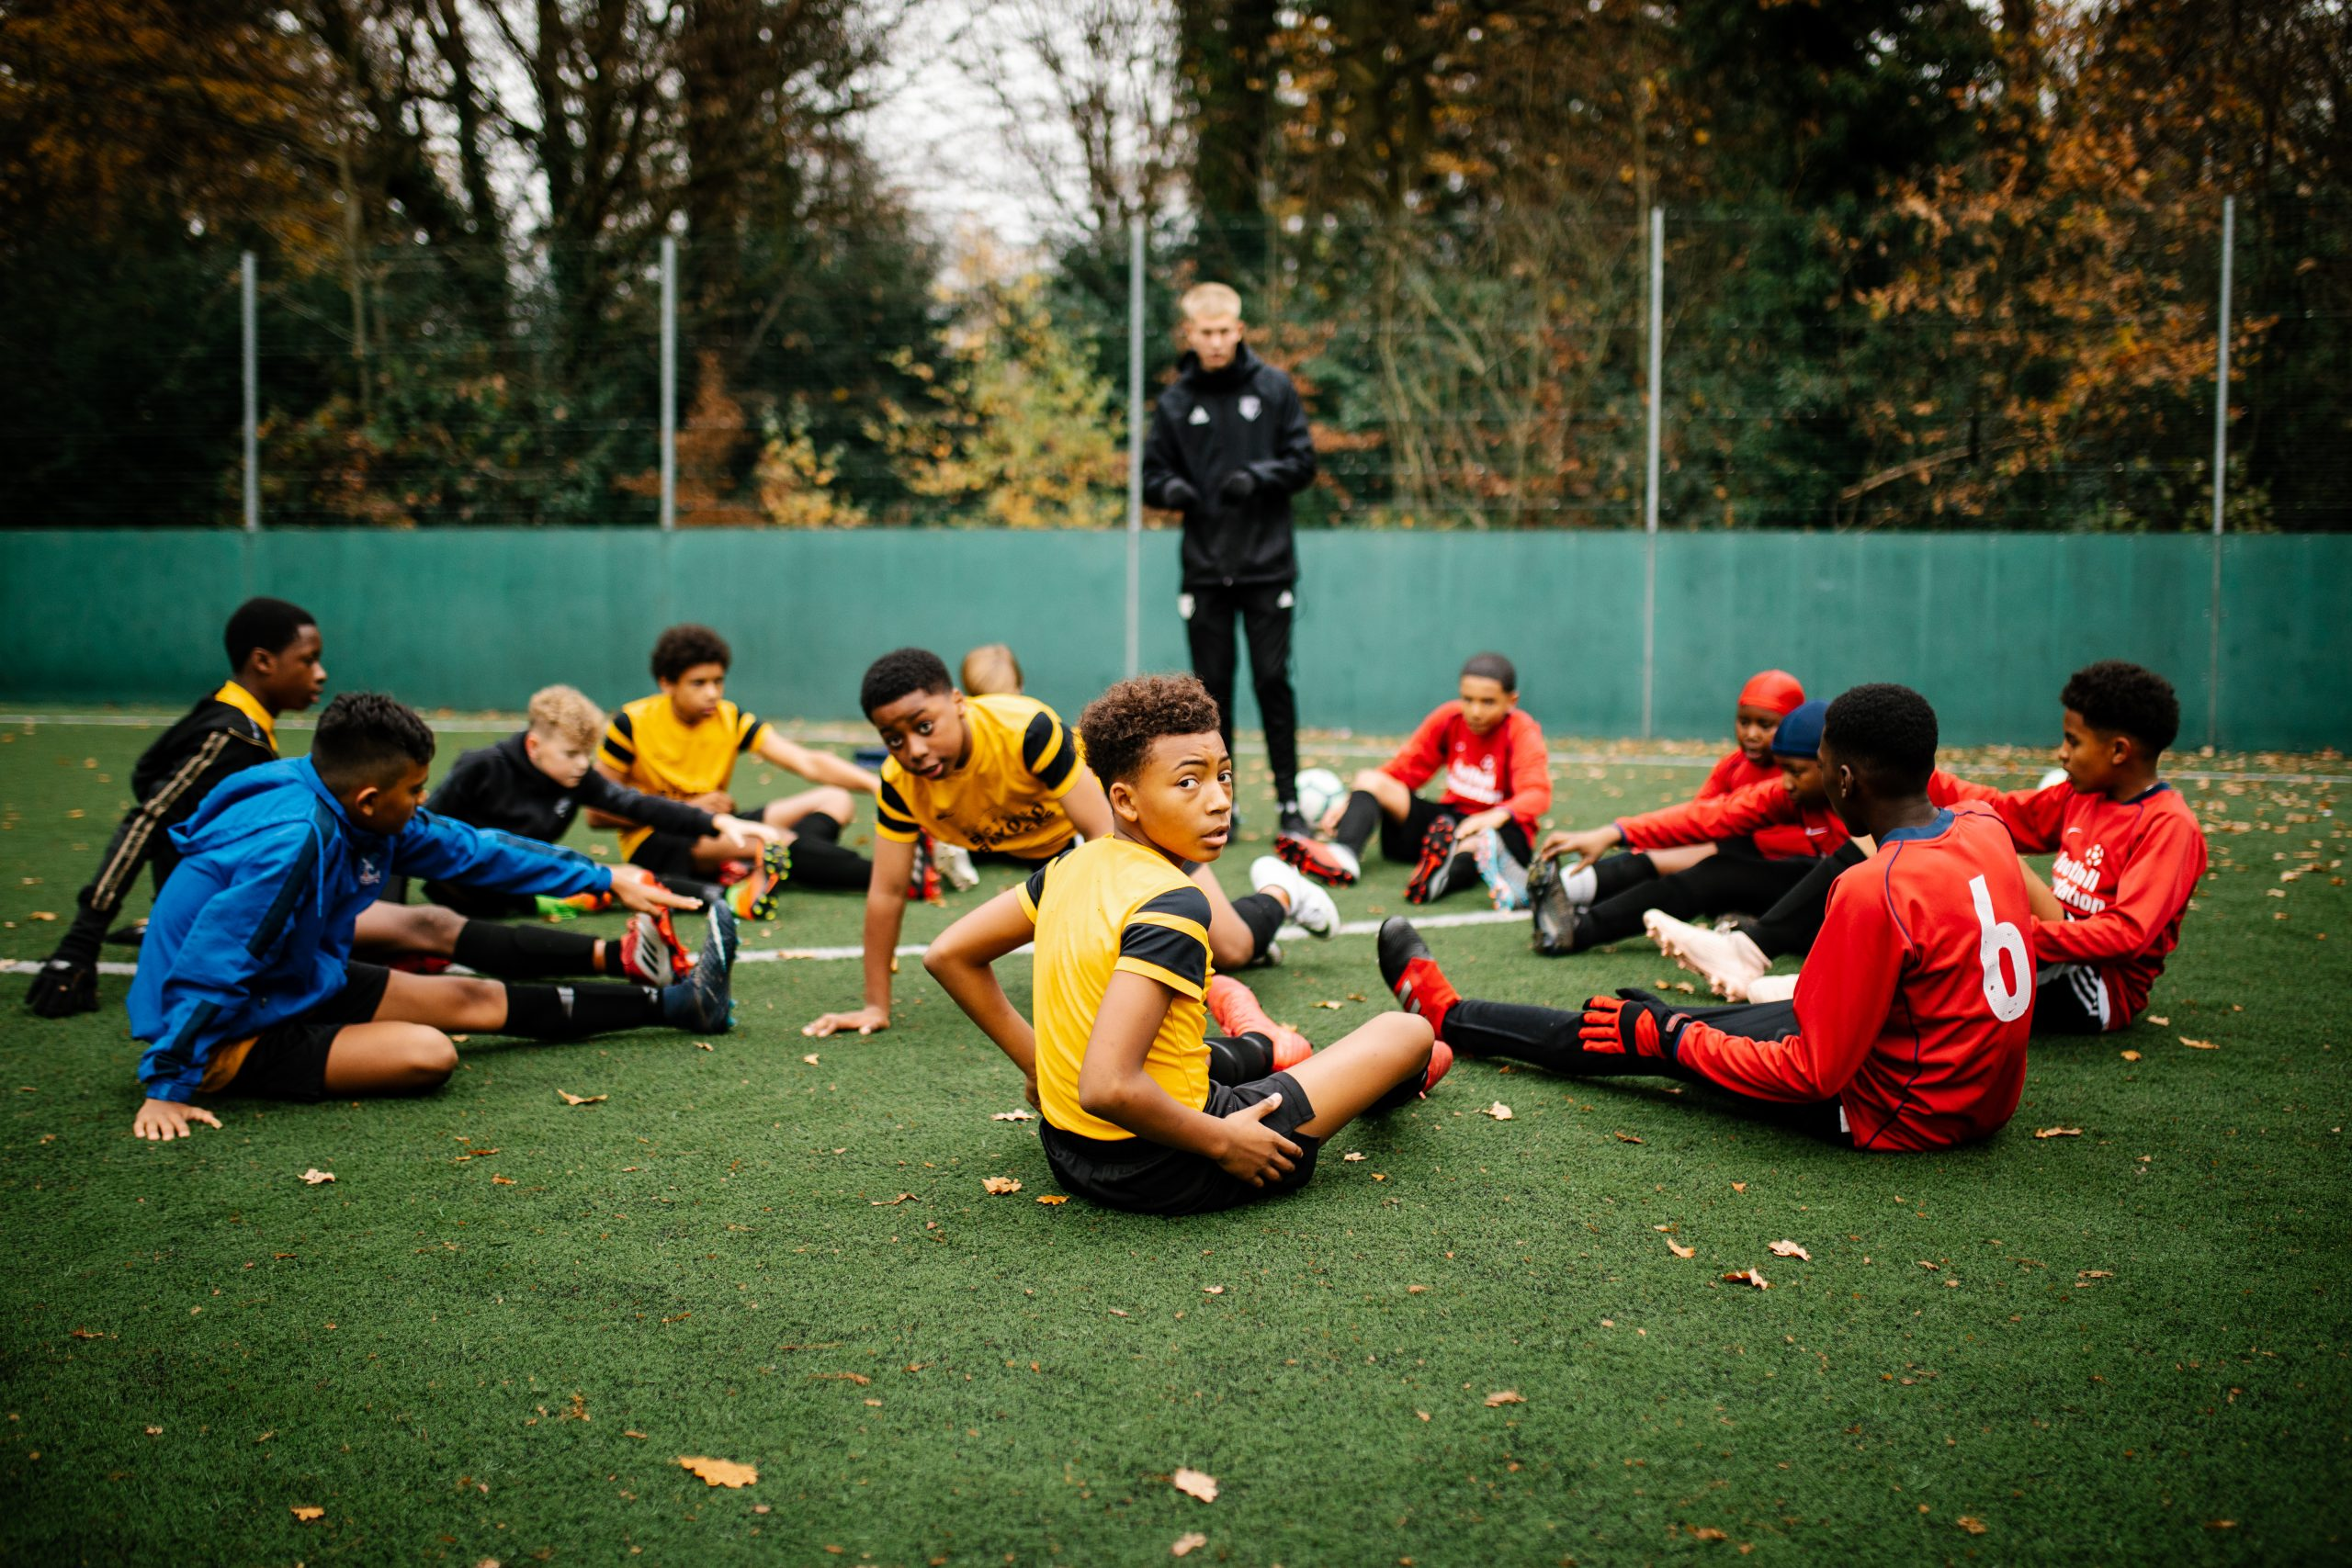 """""""Talent is everywhere but opportunity to shine is not"""", Jack Petchey sports festival brings together young Londoners"""